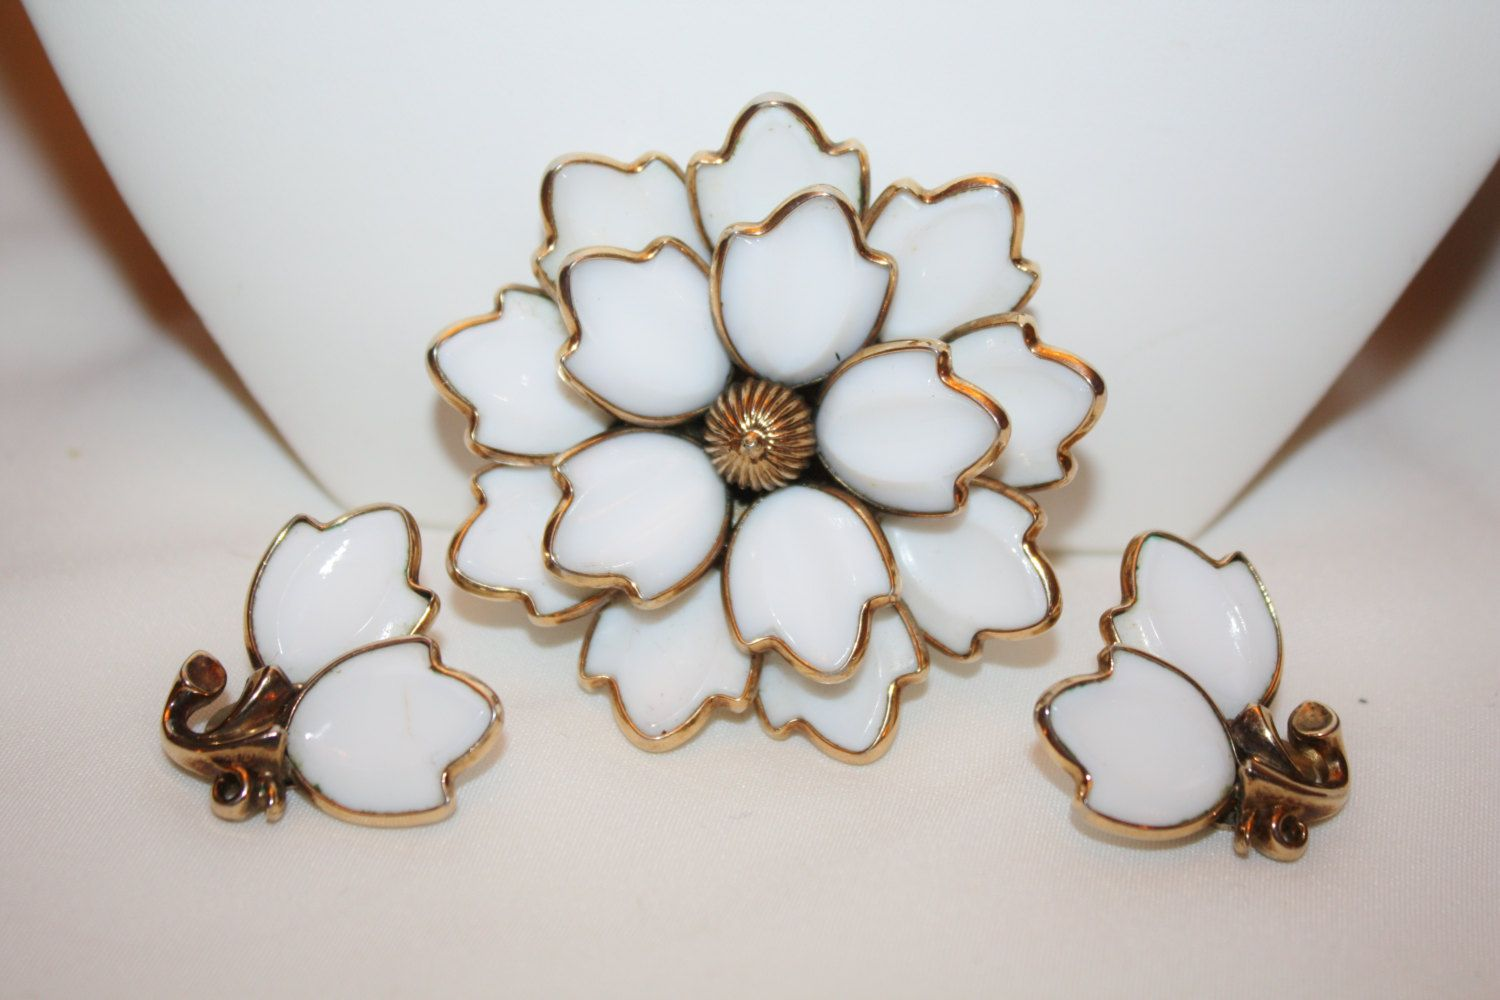 Vintage Trifari Tulip Brooch Poured Glass White Set  1950s Jewelry by patwatty on Etsy